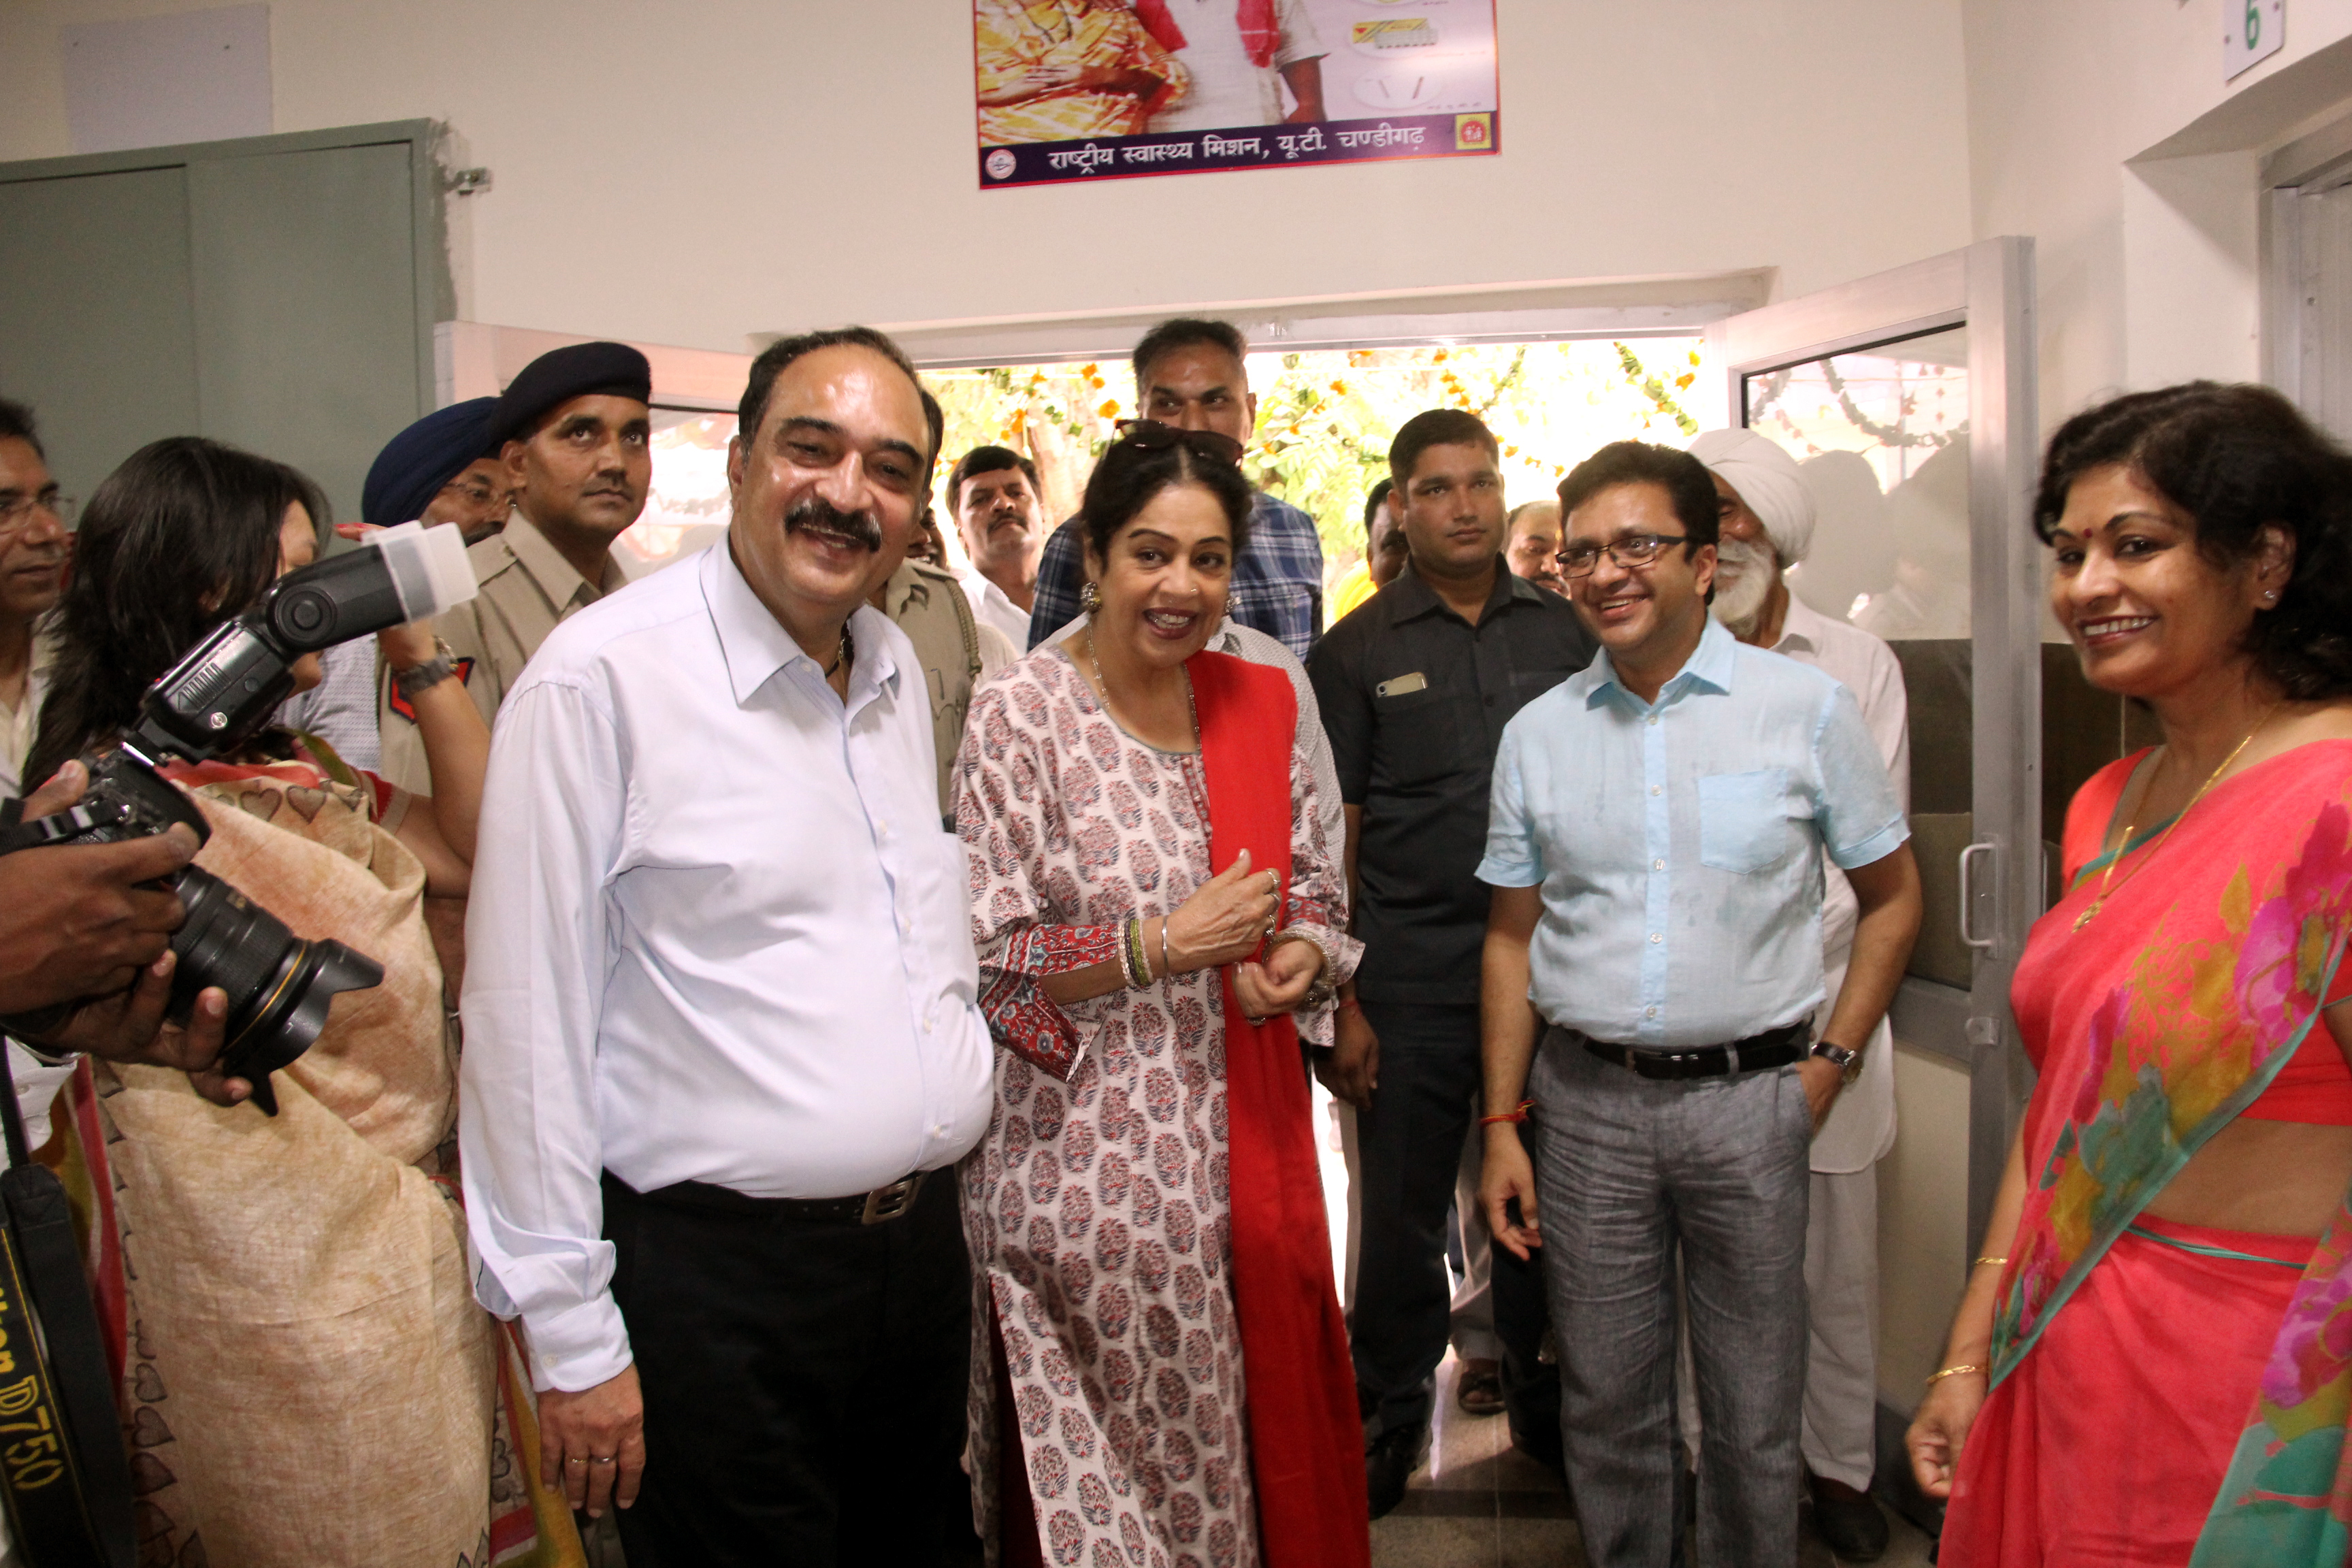 Smt. Kirron Kher, Member of Parliament, Chandigarh taking the around after  inaugurating the Dispensary at Village Sarangpur, Chandigarh on Saturday, August 27, 2016.